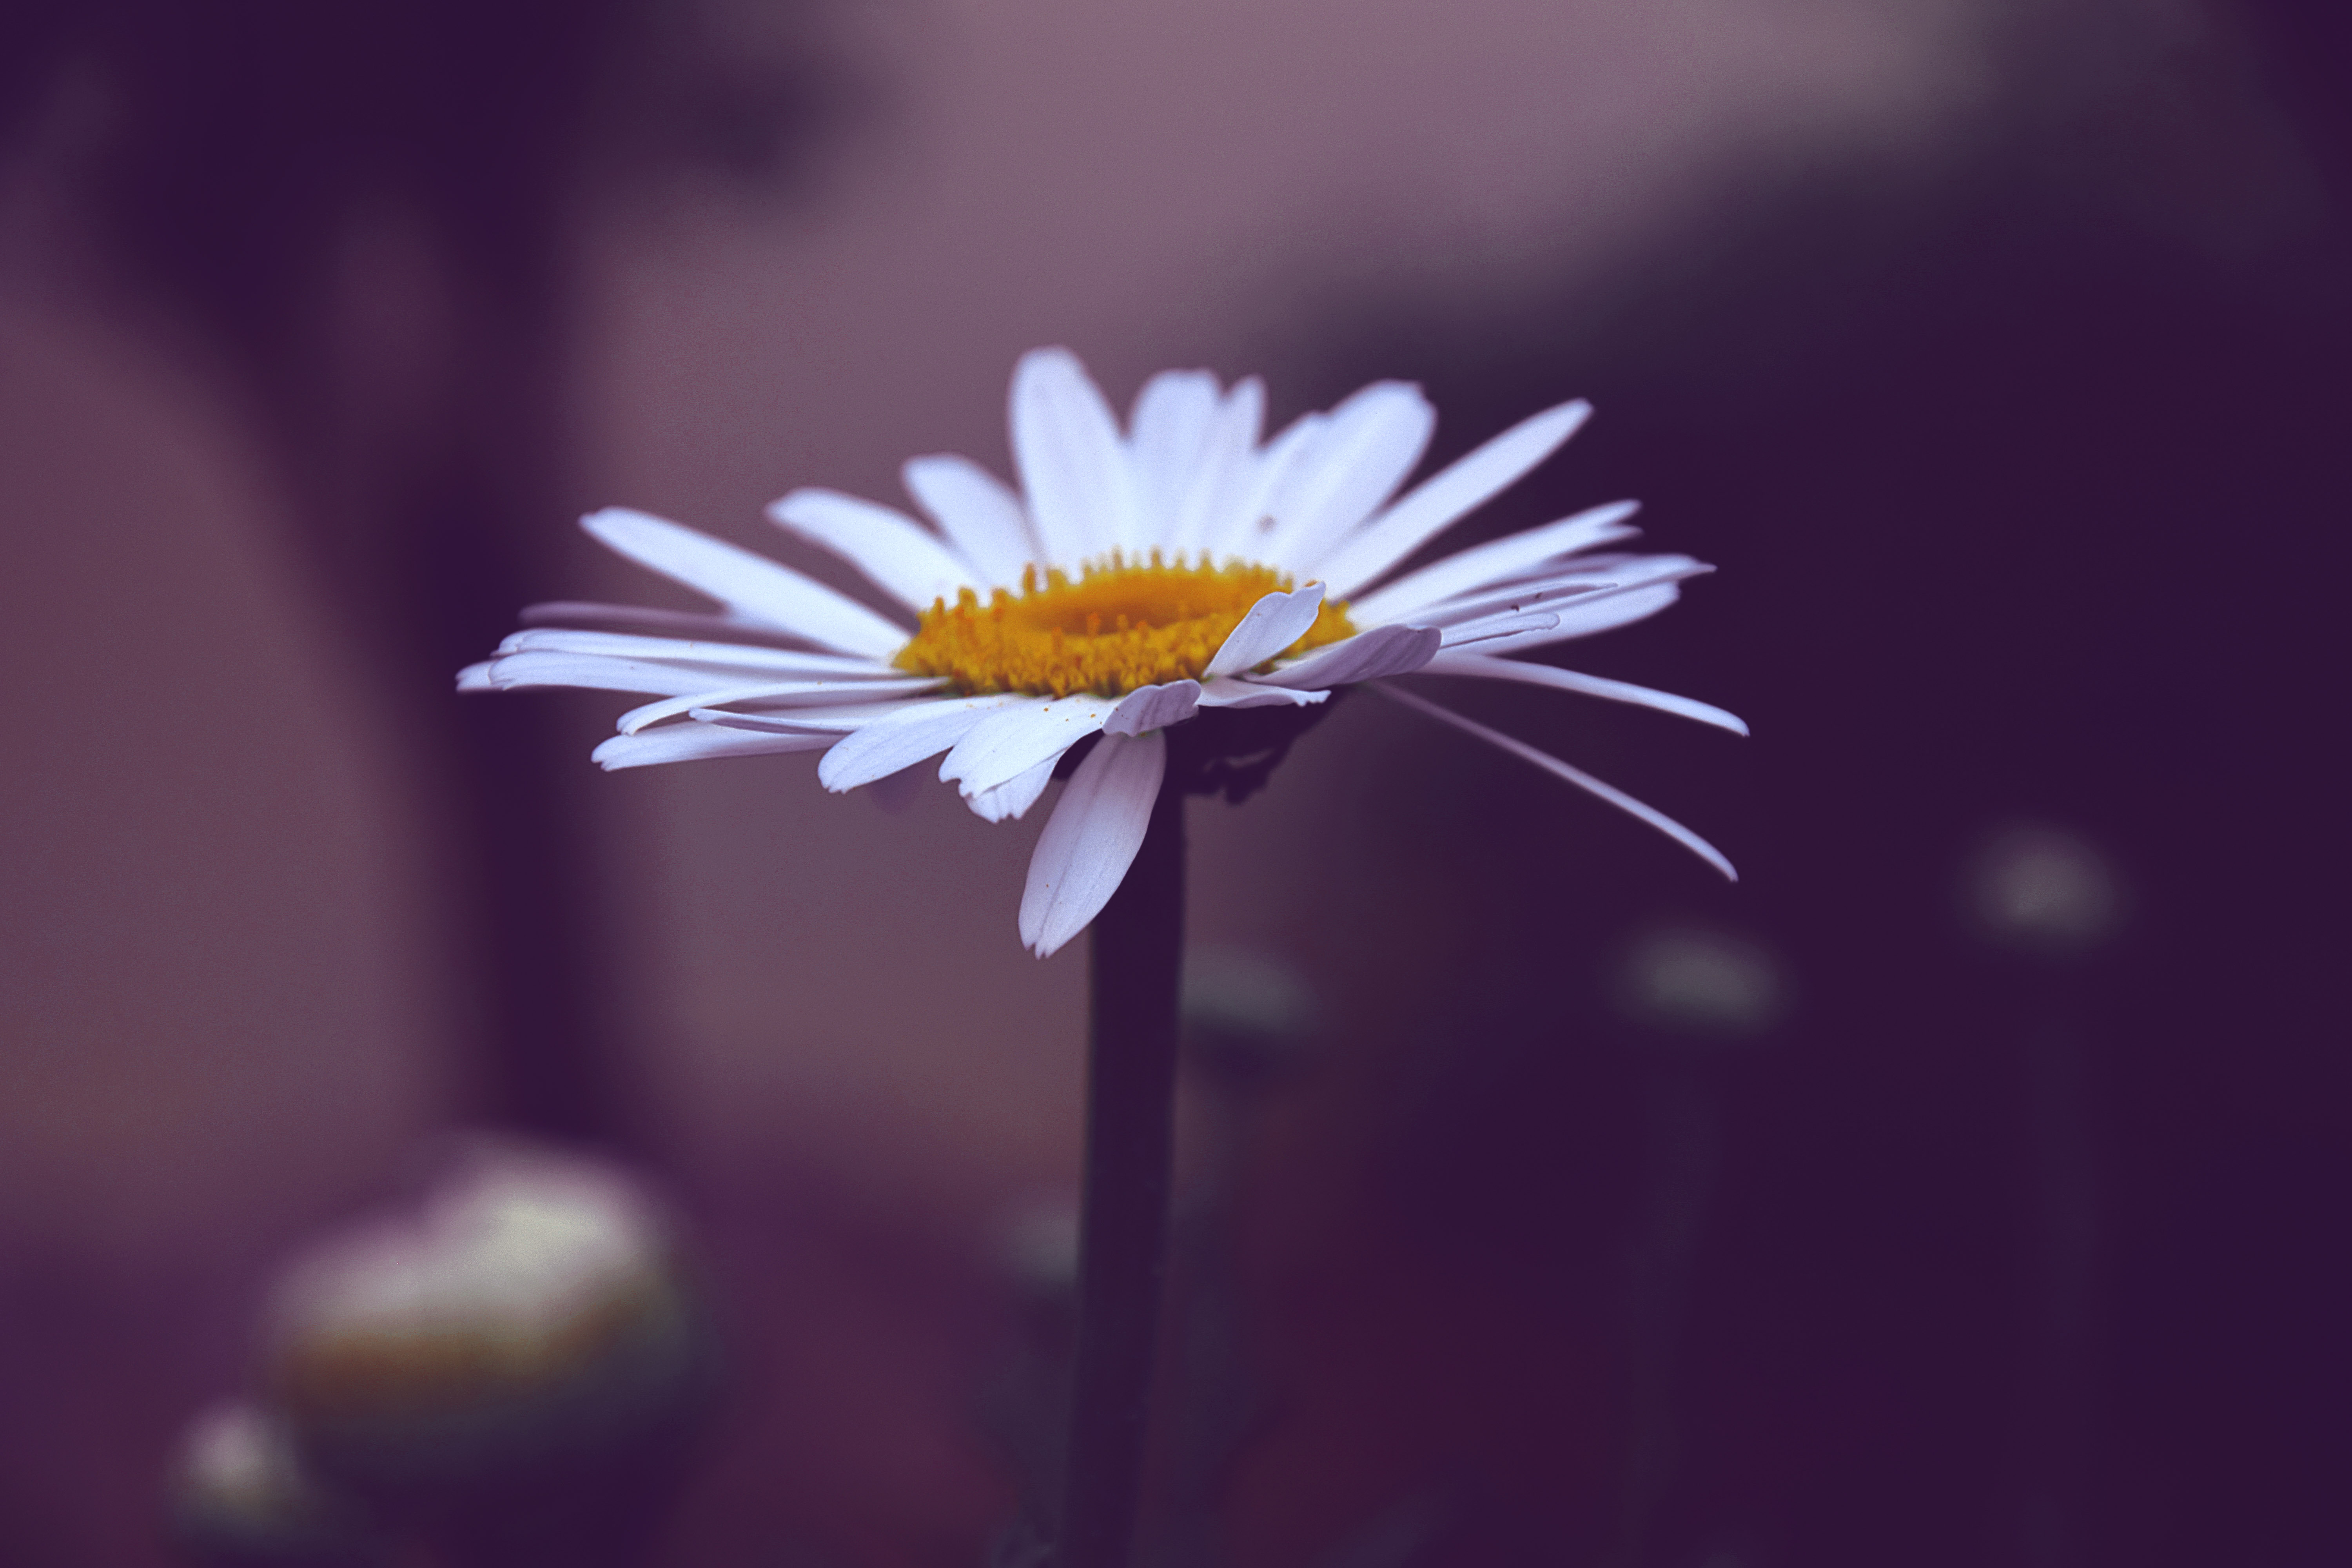 Free stock photos of daisy pexels photo of white and yellow daisy flower dhlflorist Image collections